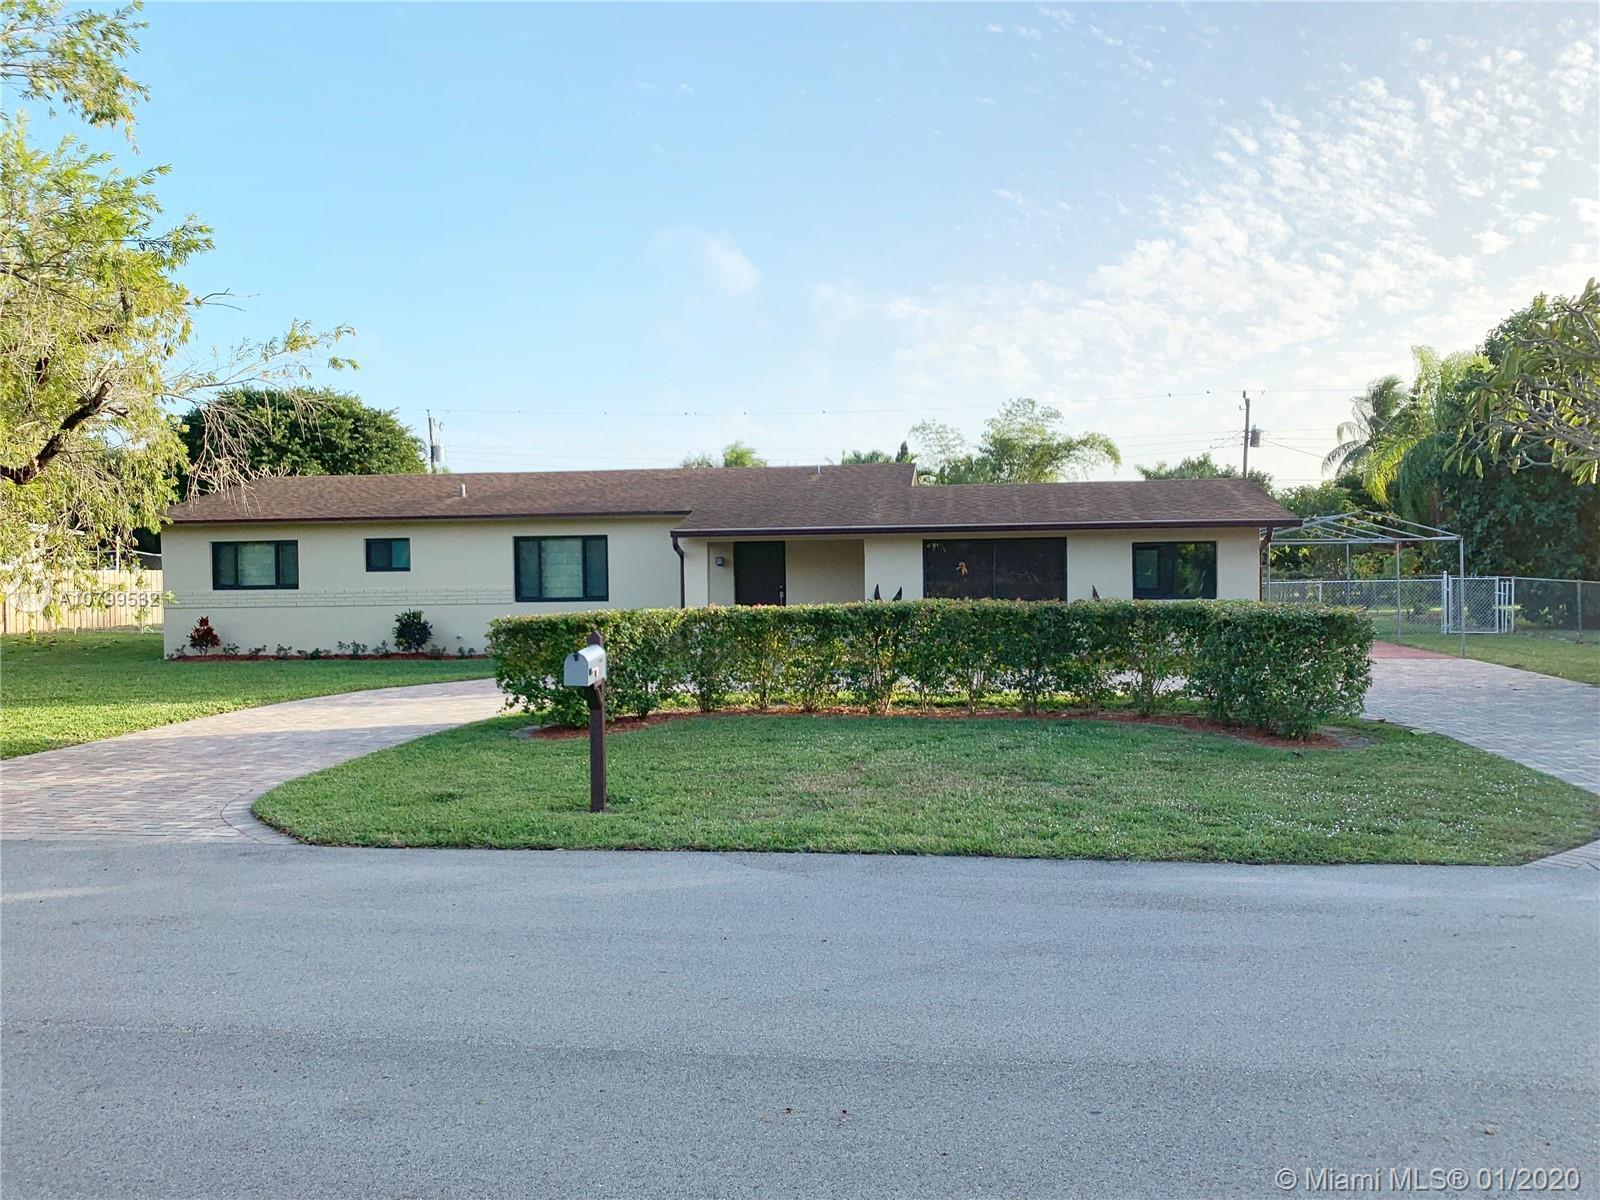 Nice 3 Bedrooms / 2 Bathrooms with a Garage / Den one story home sits on a large lot with a great fl